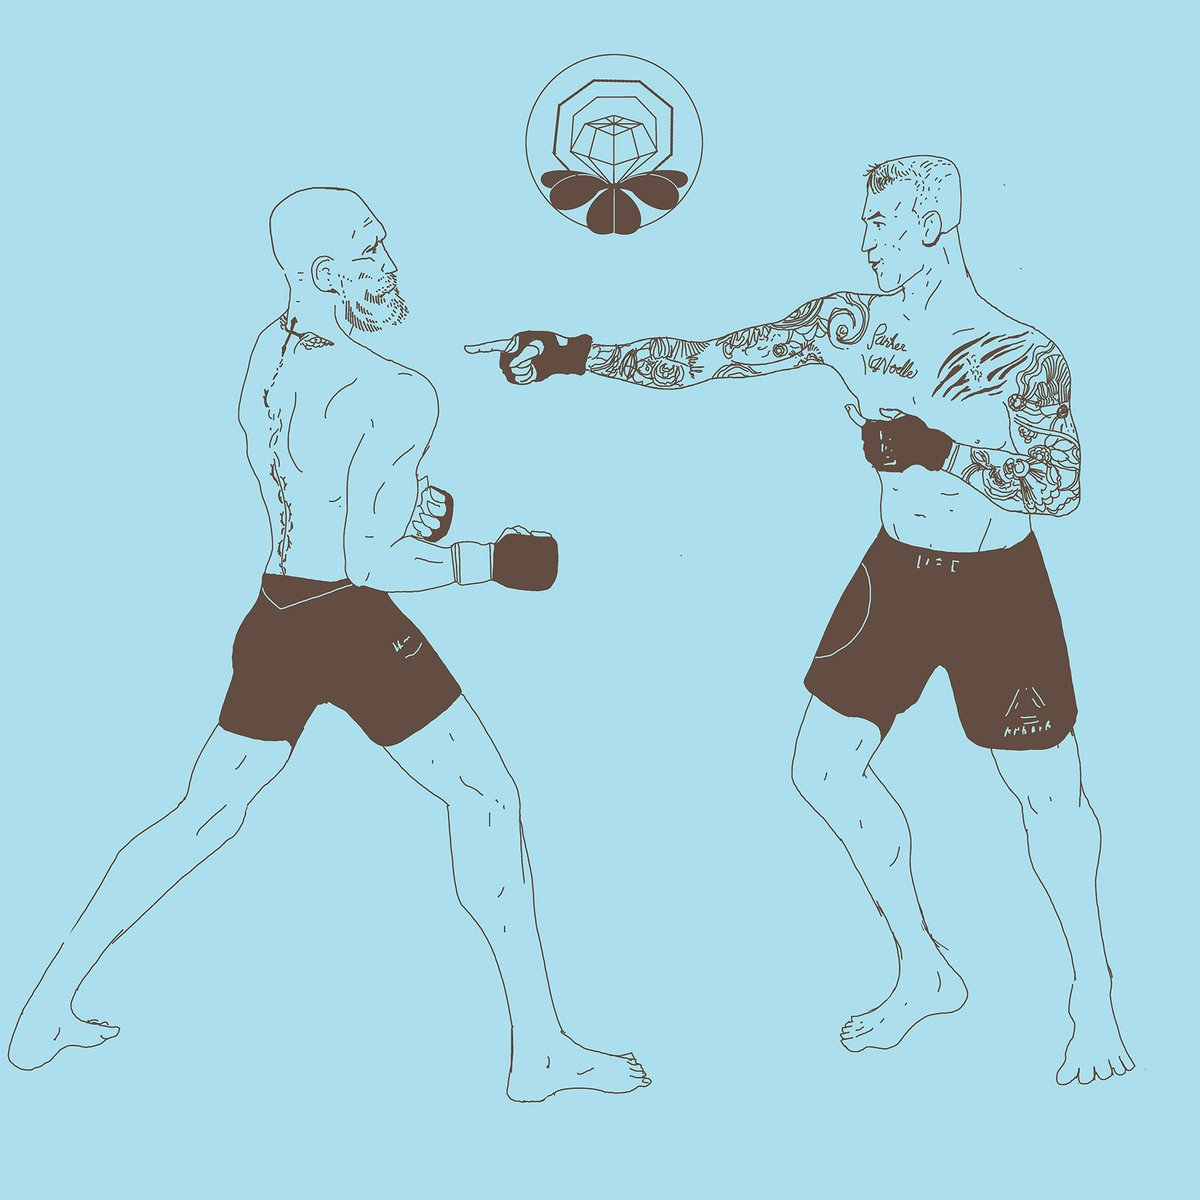 from #ufc257 the moment @DustinPoirier fully realizes he can beat #conor #art #mma  #illustration #ufc